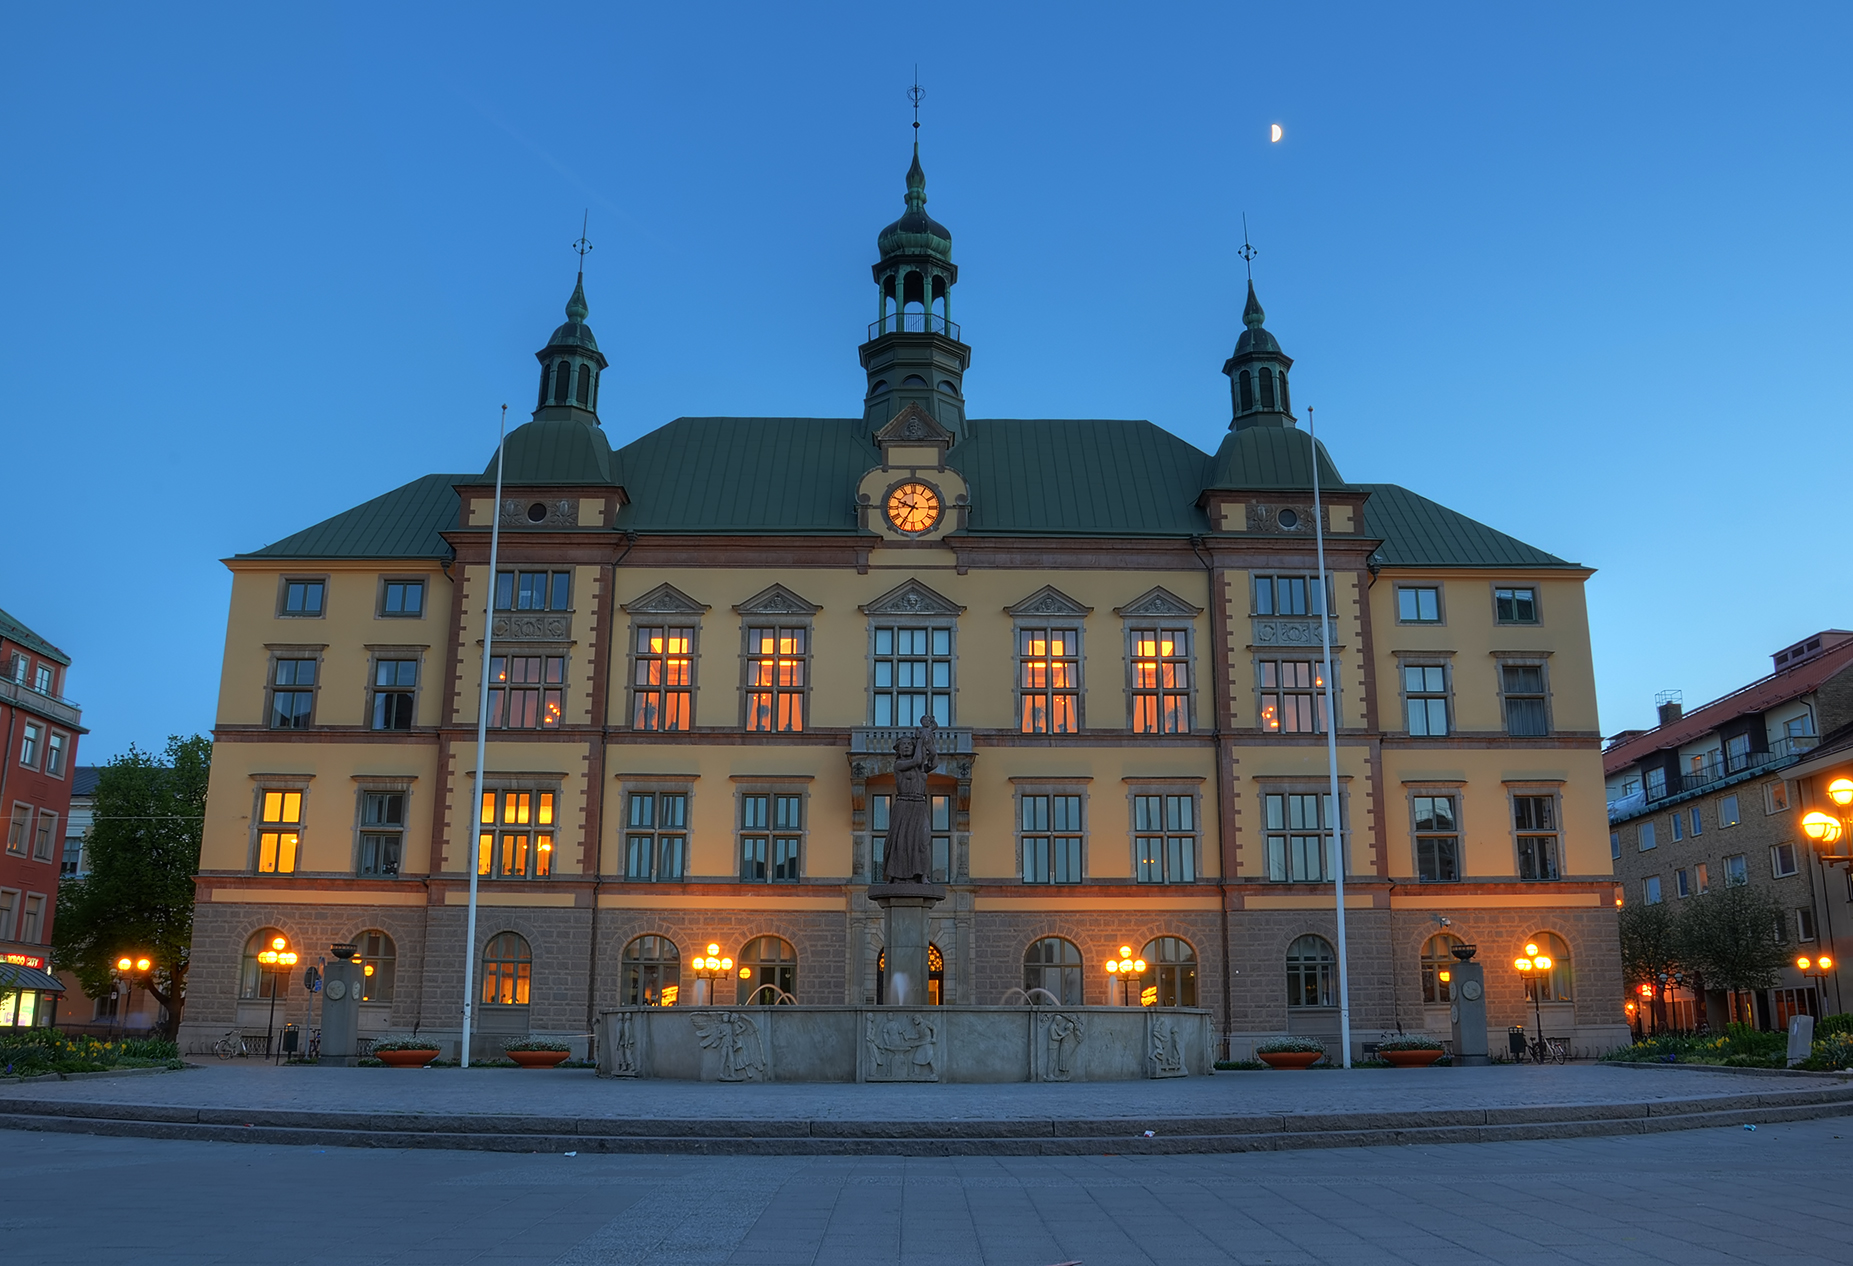 Hometown City Hall by HenrikSundholm